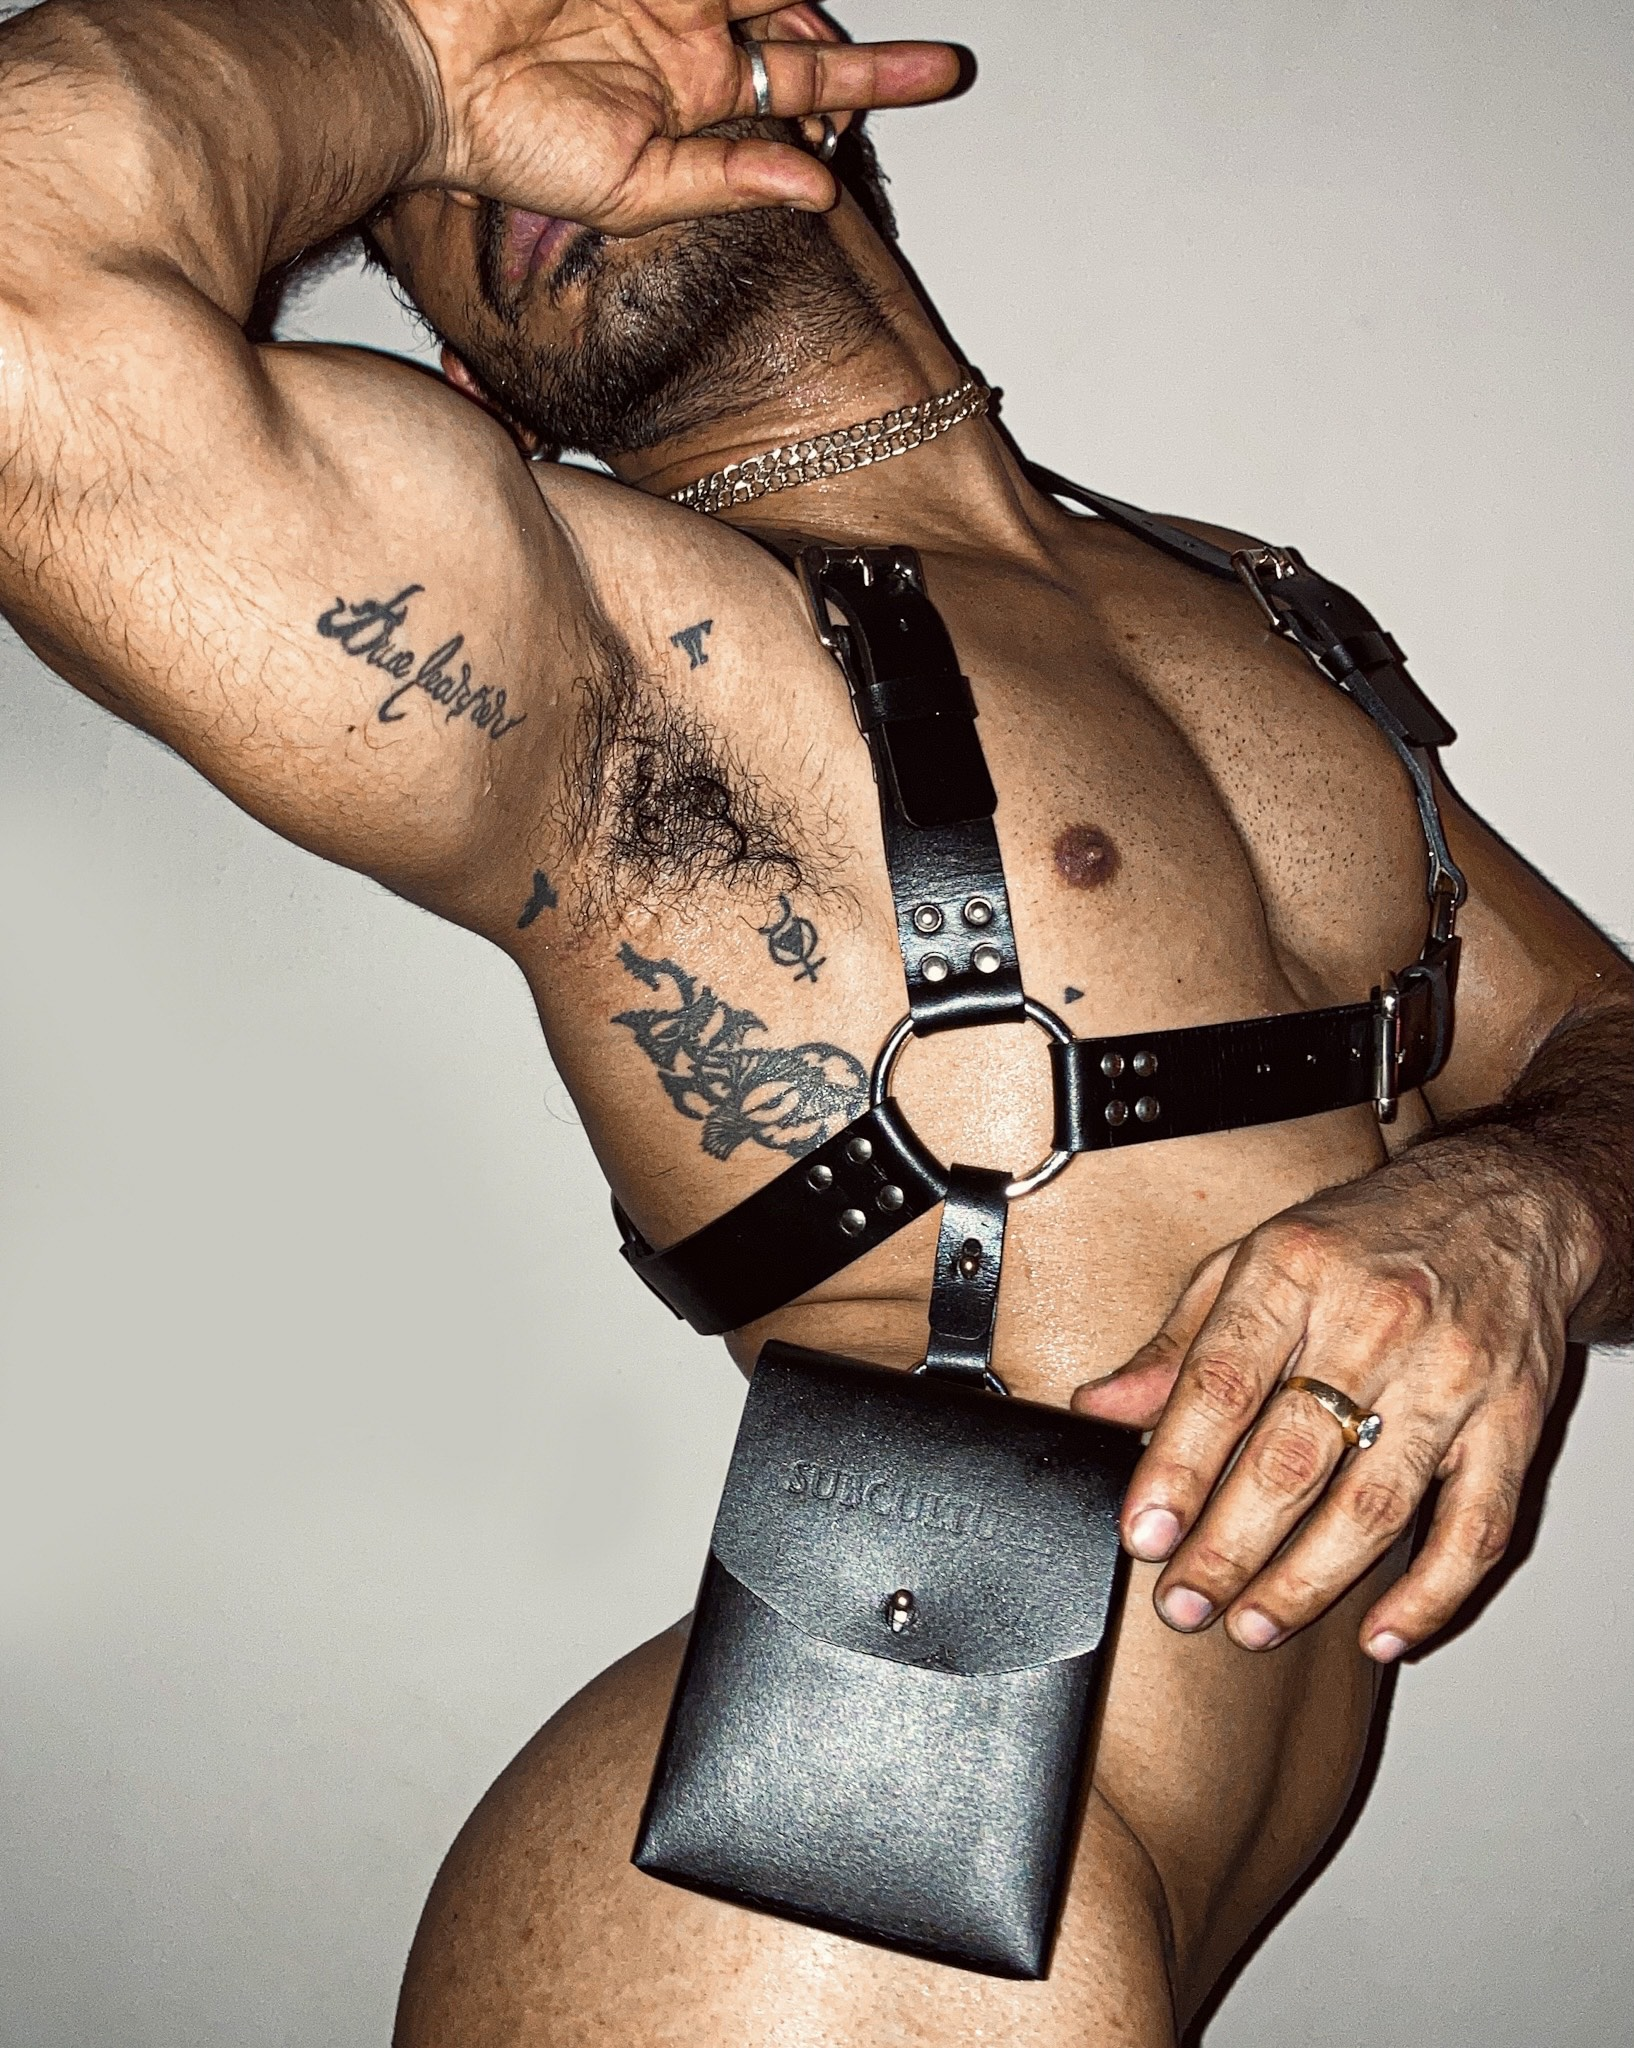 Subculture: A Brand That Defies Norms With Leather Fetish and Fashion